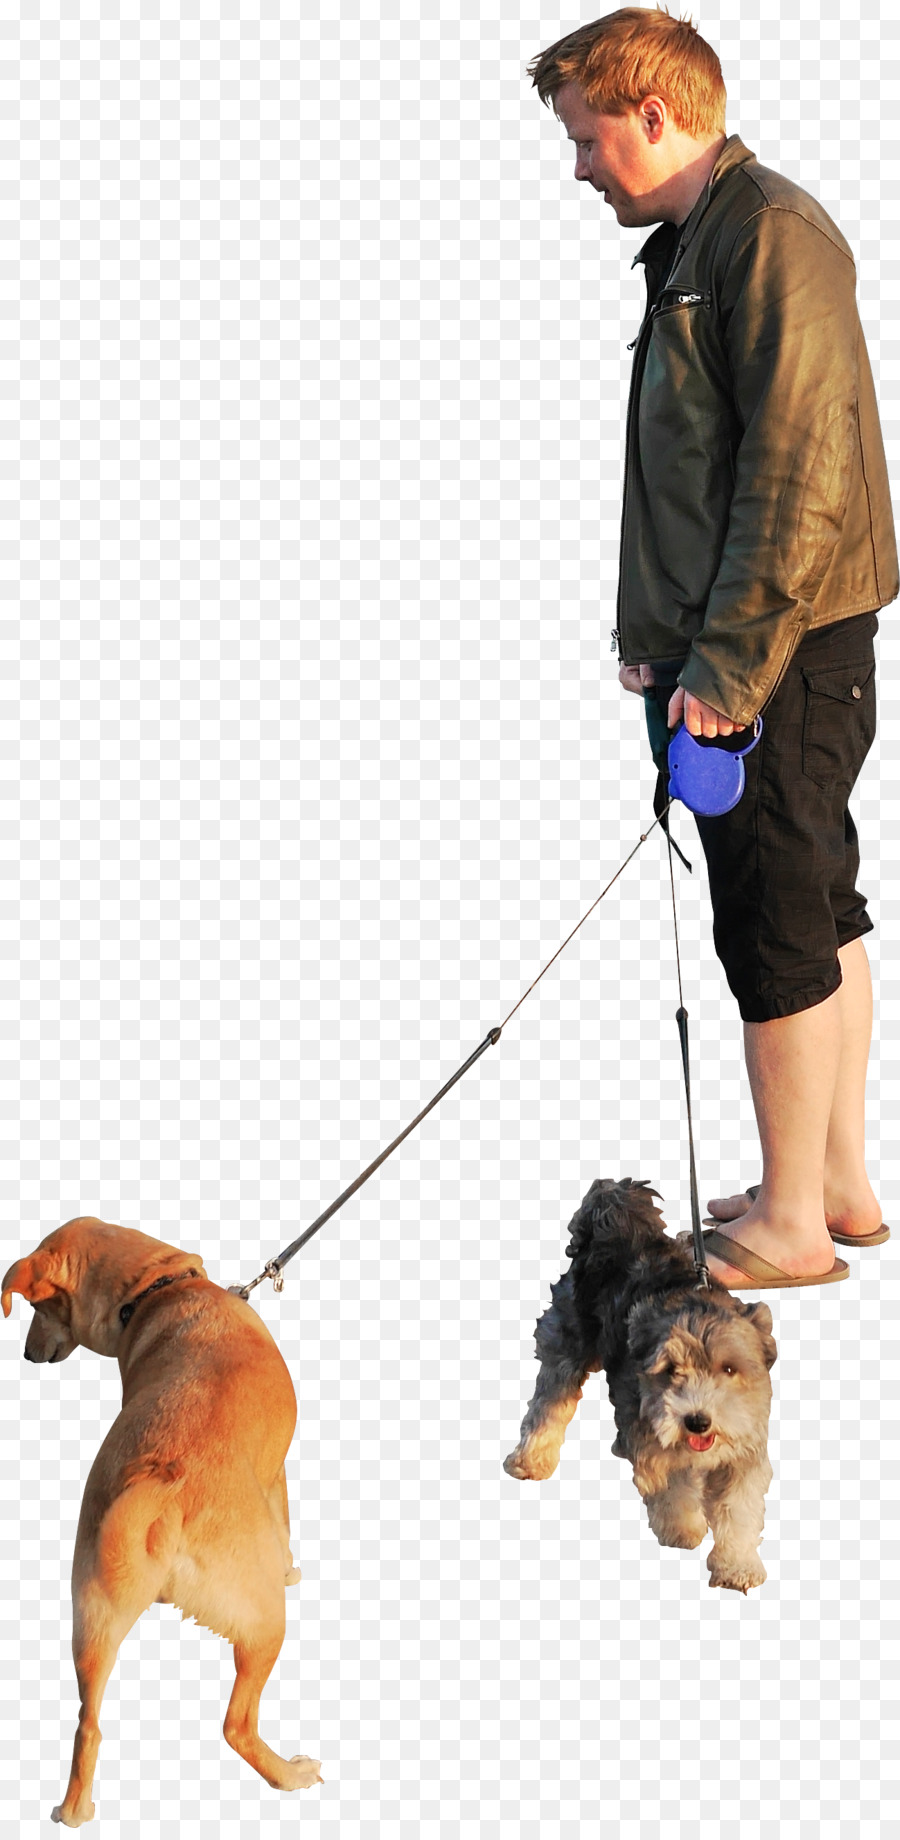 person walking dog png clipart Dog walking